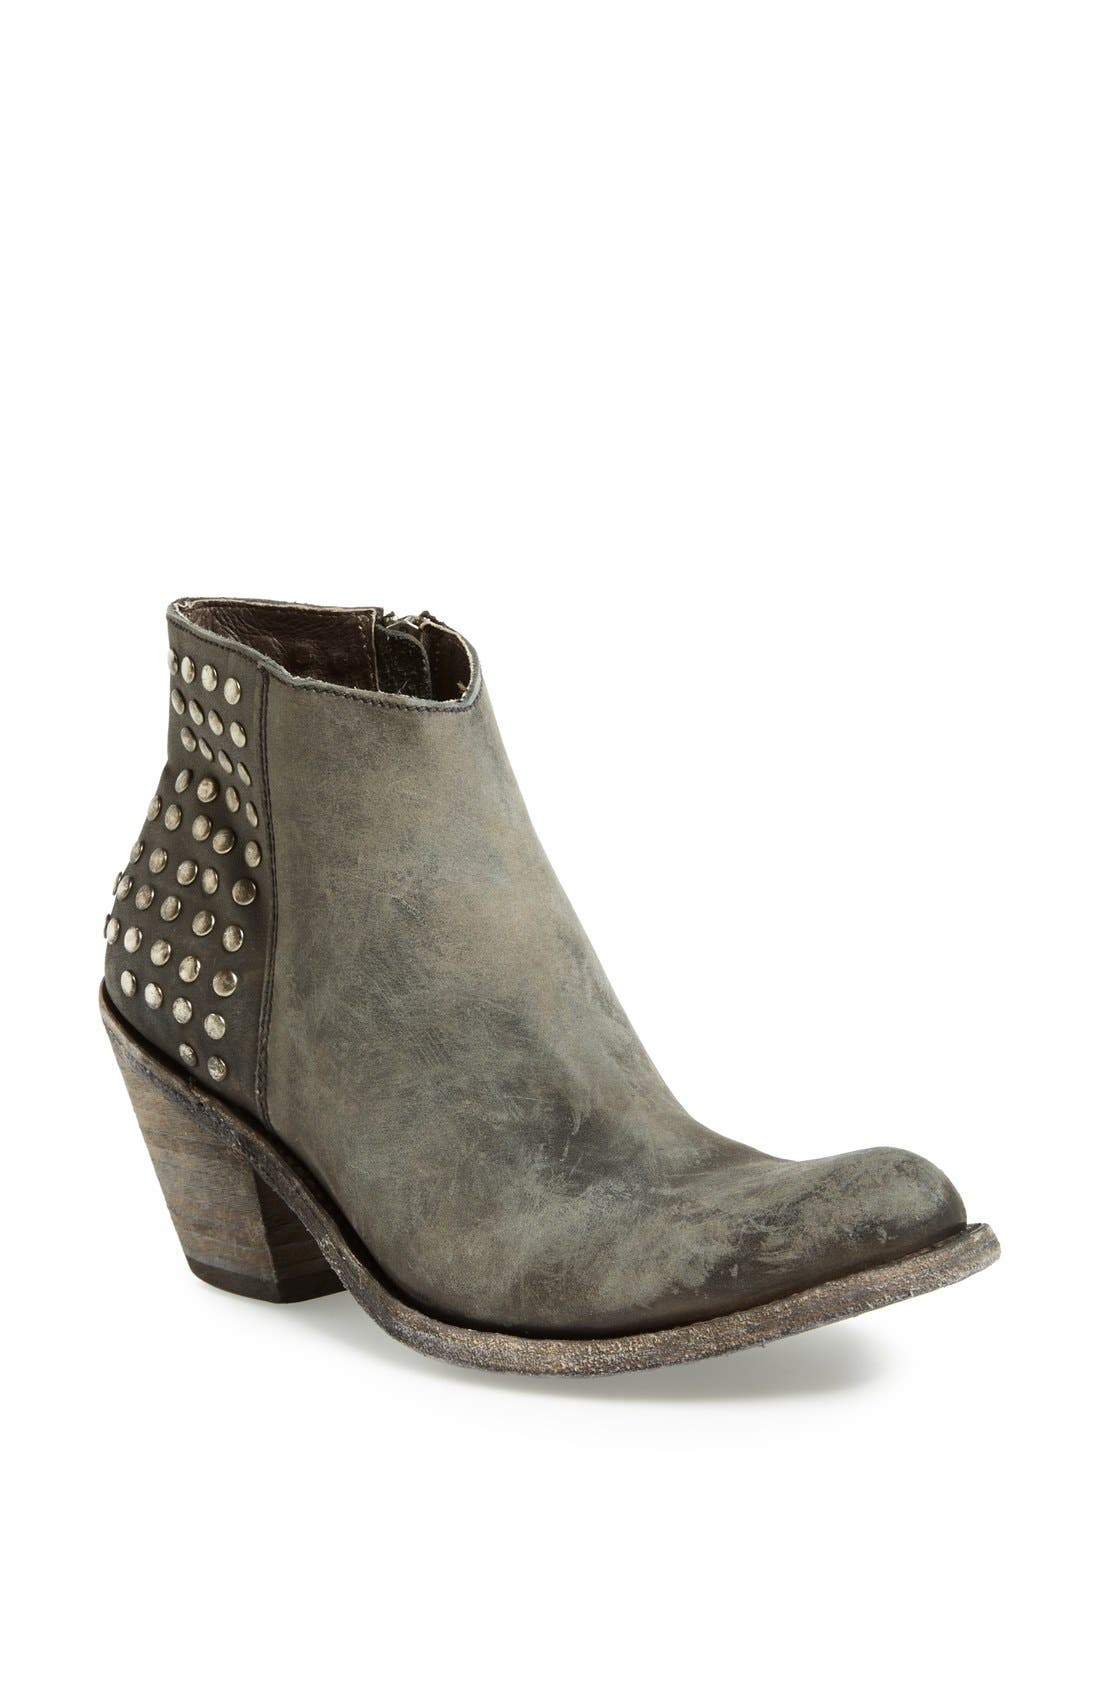 Alternate Image 1 Selected - Liberty Black Studded Short Boot